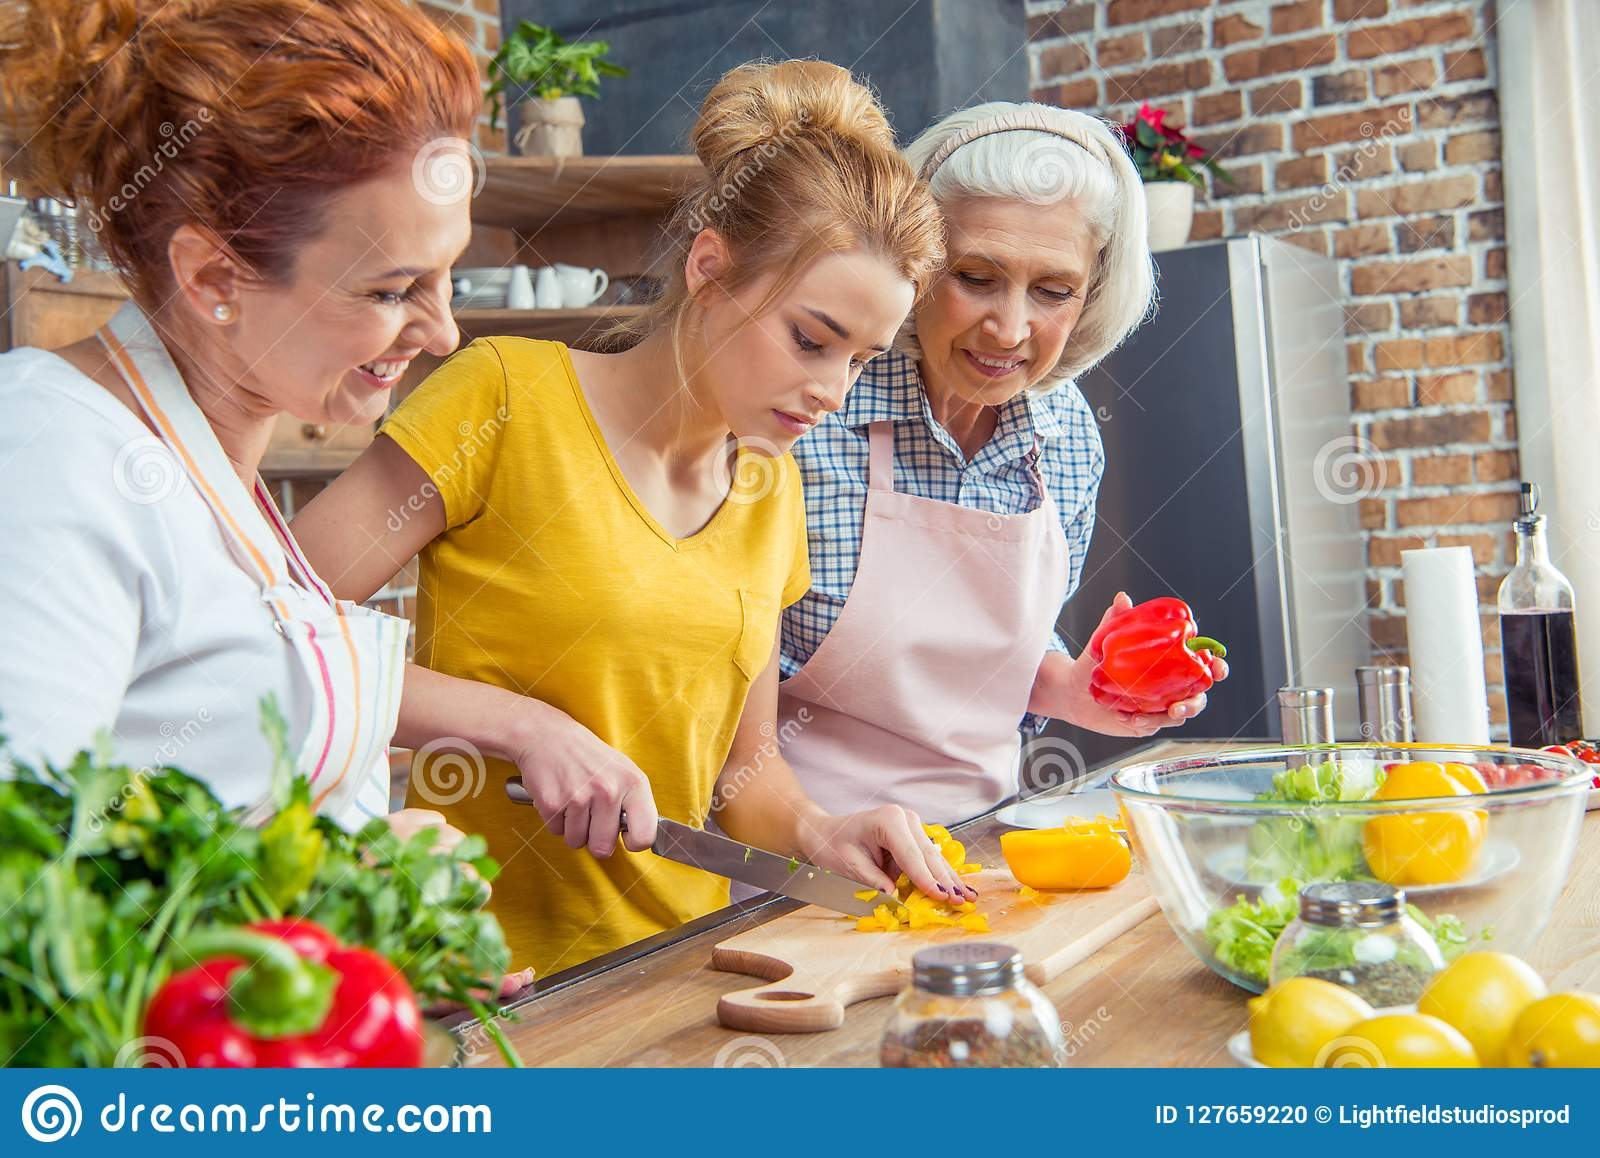 Happy three-generation family cooking together vegetable salad